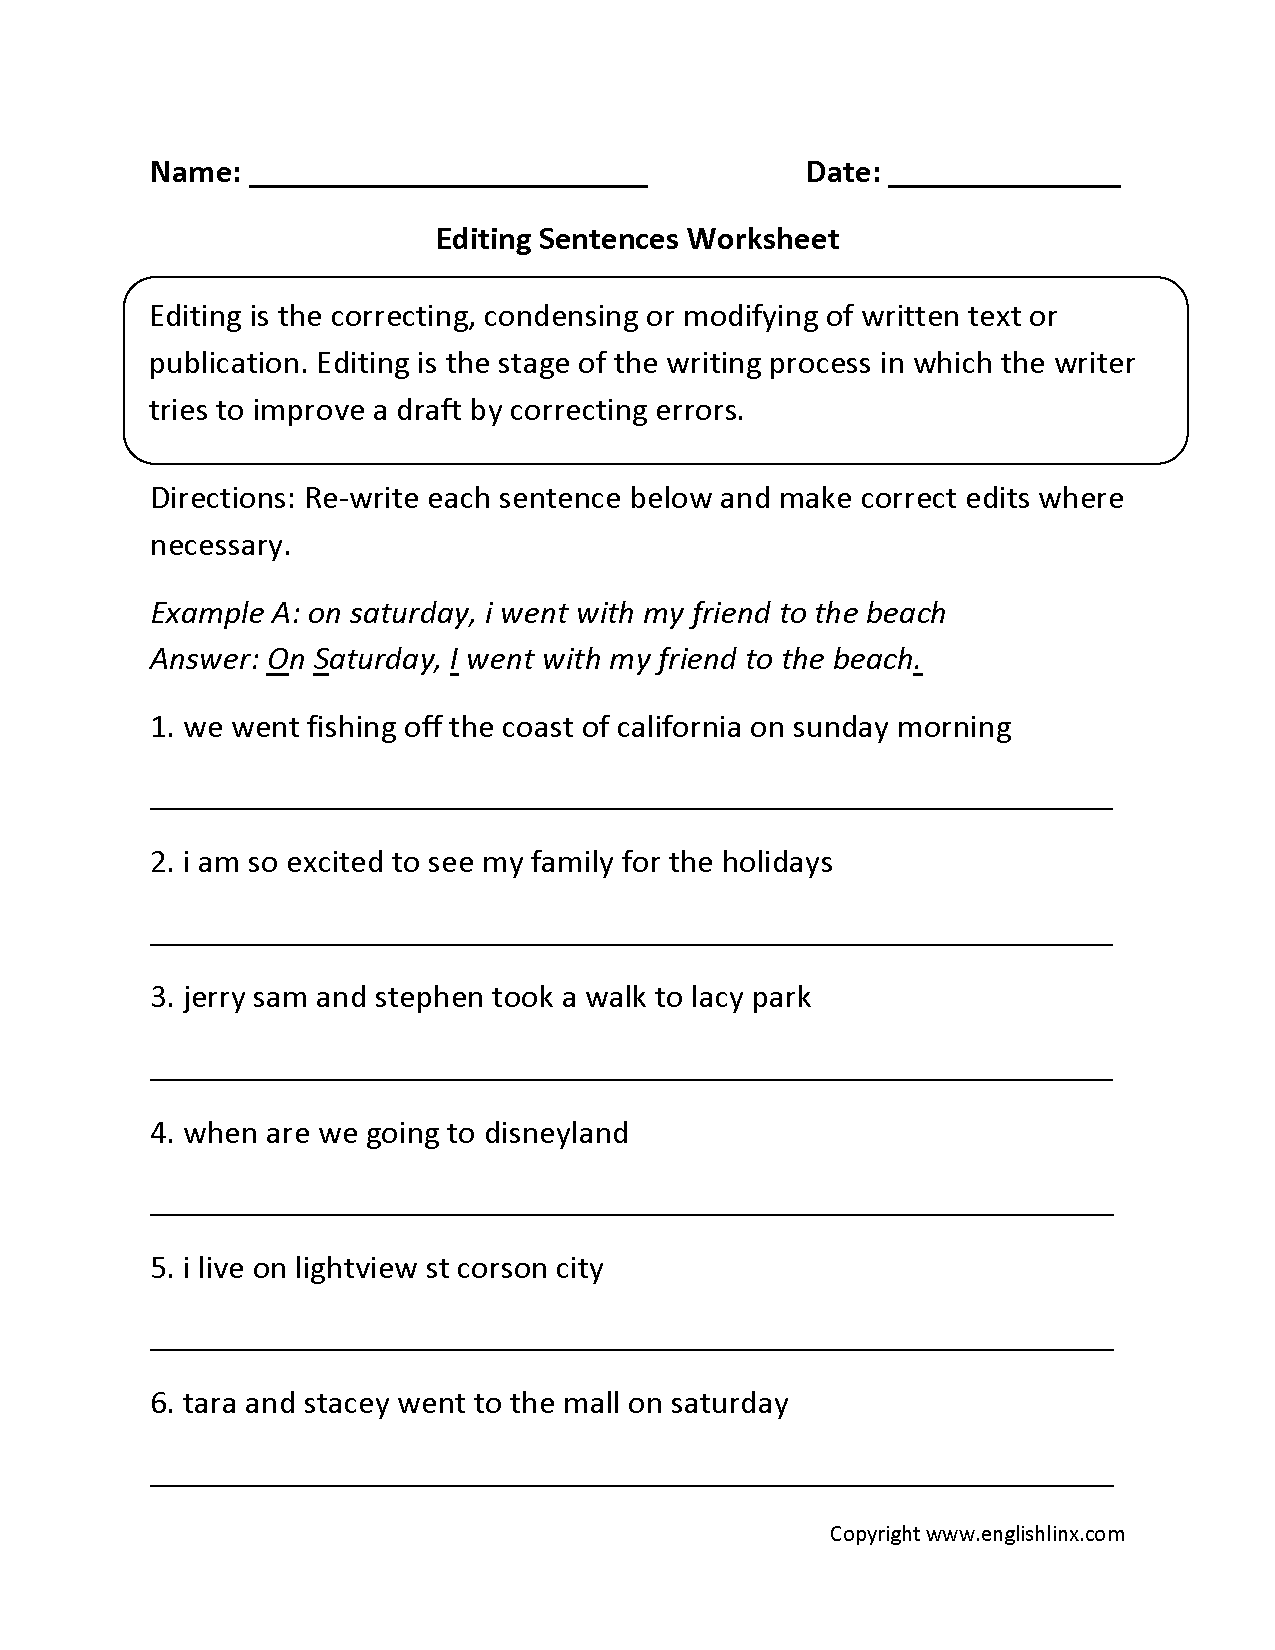 worksheet 8th Grade Writing Worksheets writing worksheets editing worksheets